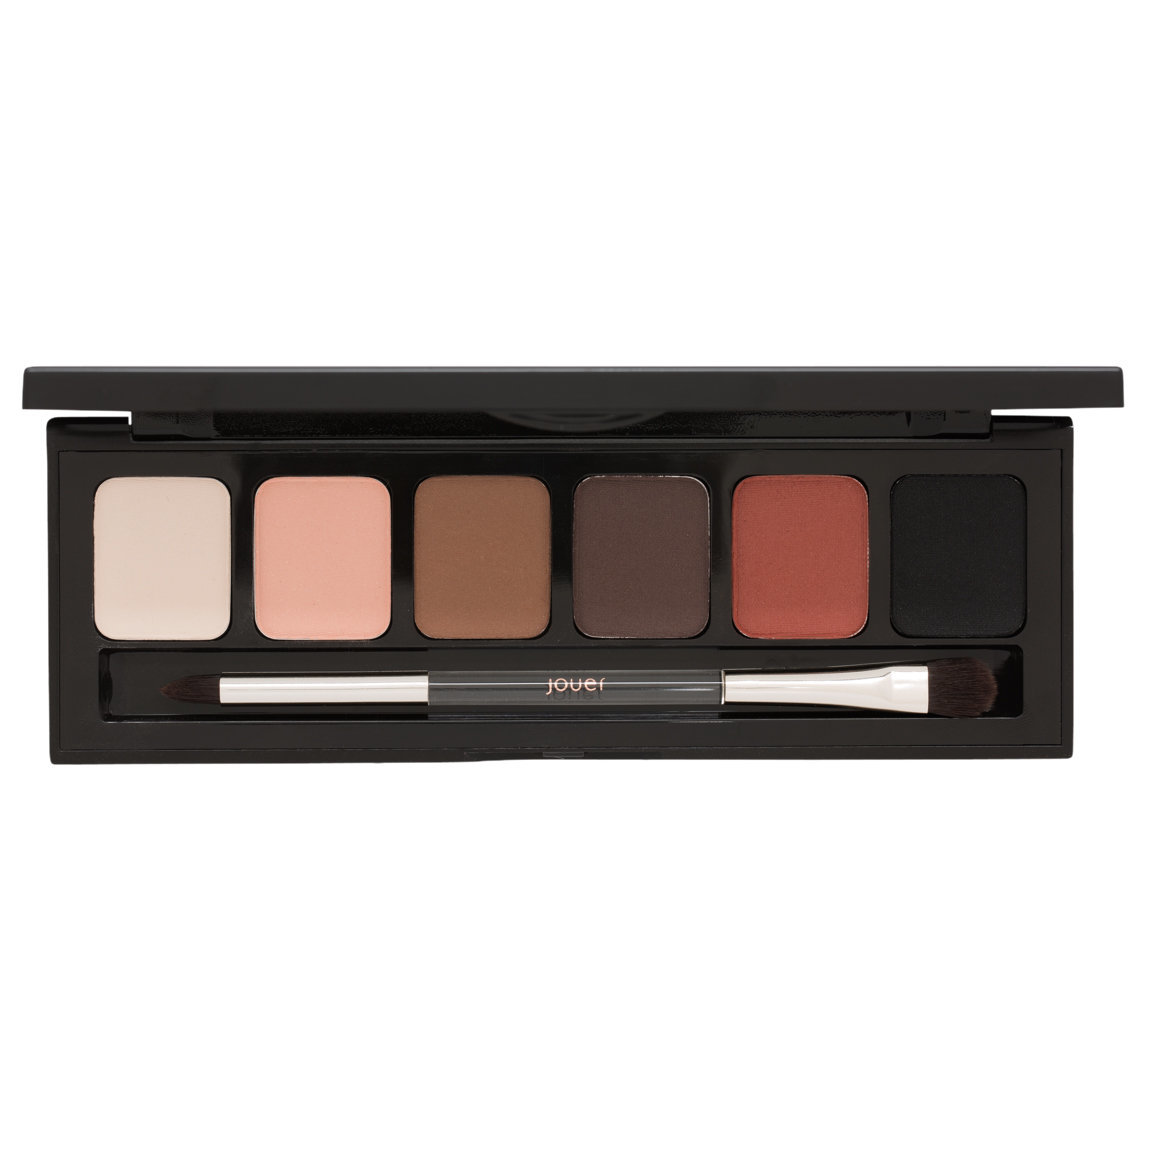 Jouer Cosmetics Essential Jet-Set Matte Eyeshadow Palette product smear.